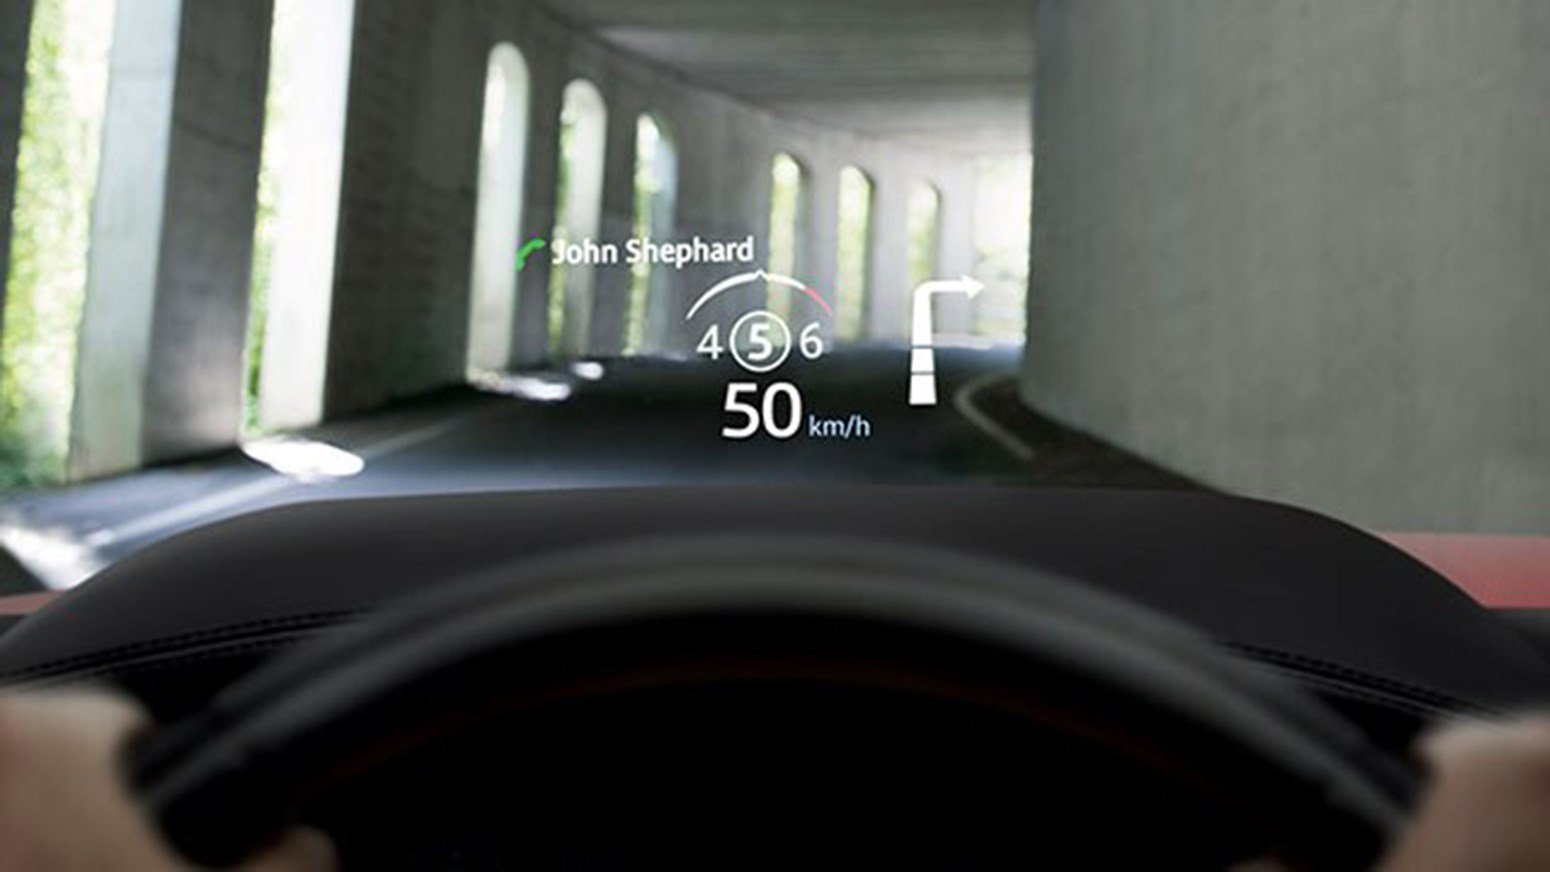 Rrs Heads Up Display 1400X810